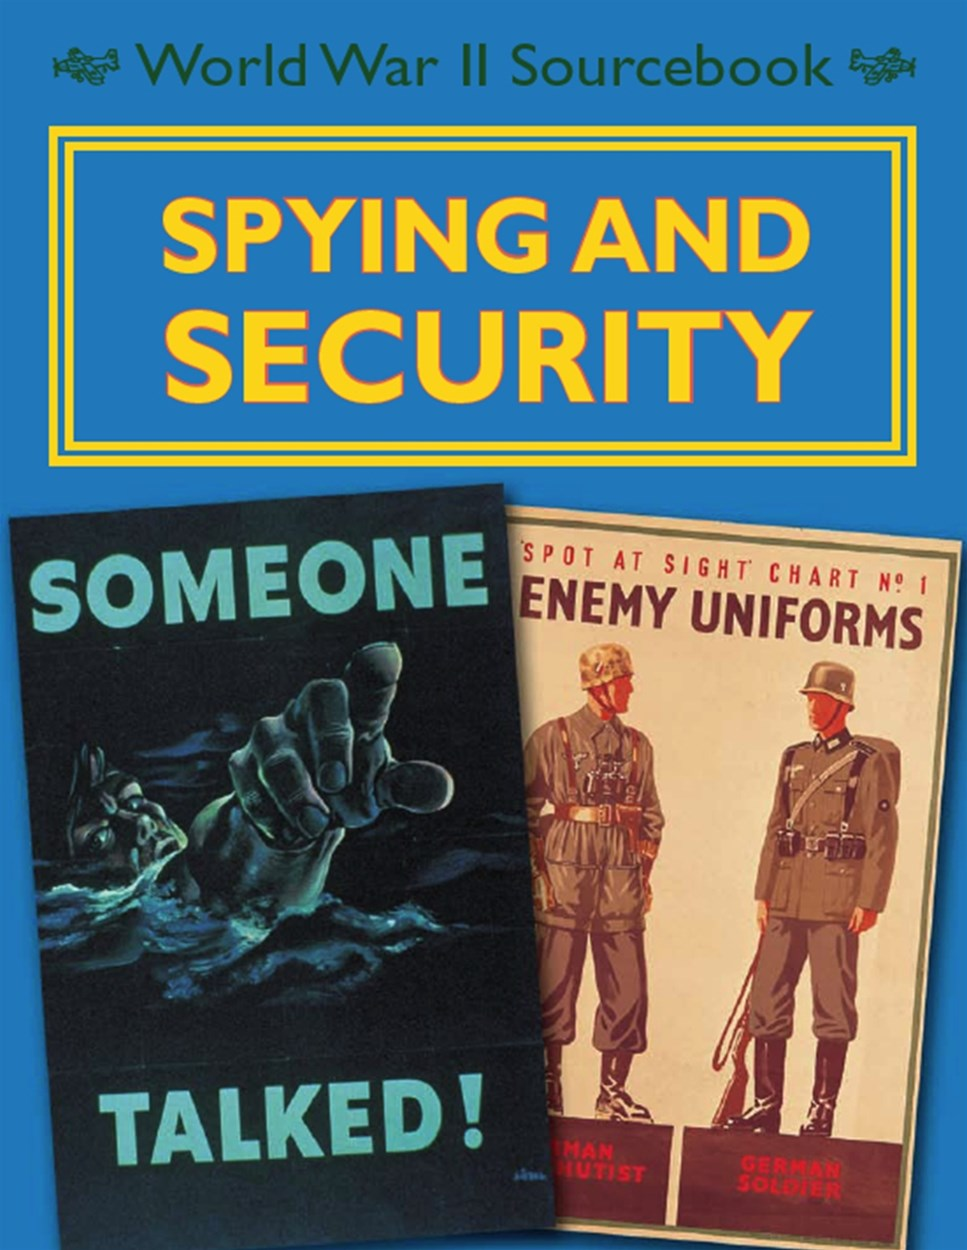 World War II Sourcebook: Spying and Security